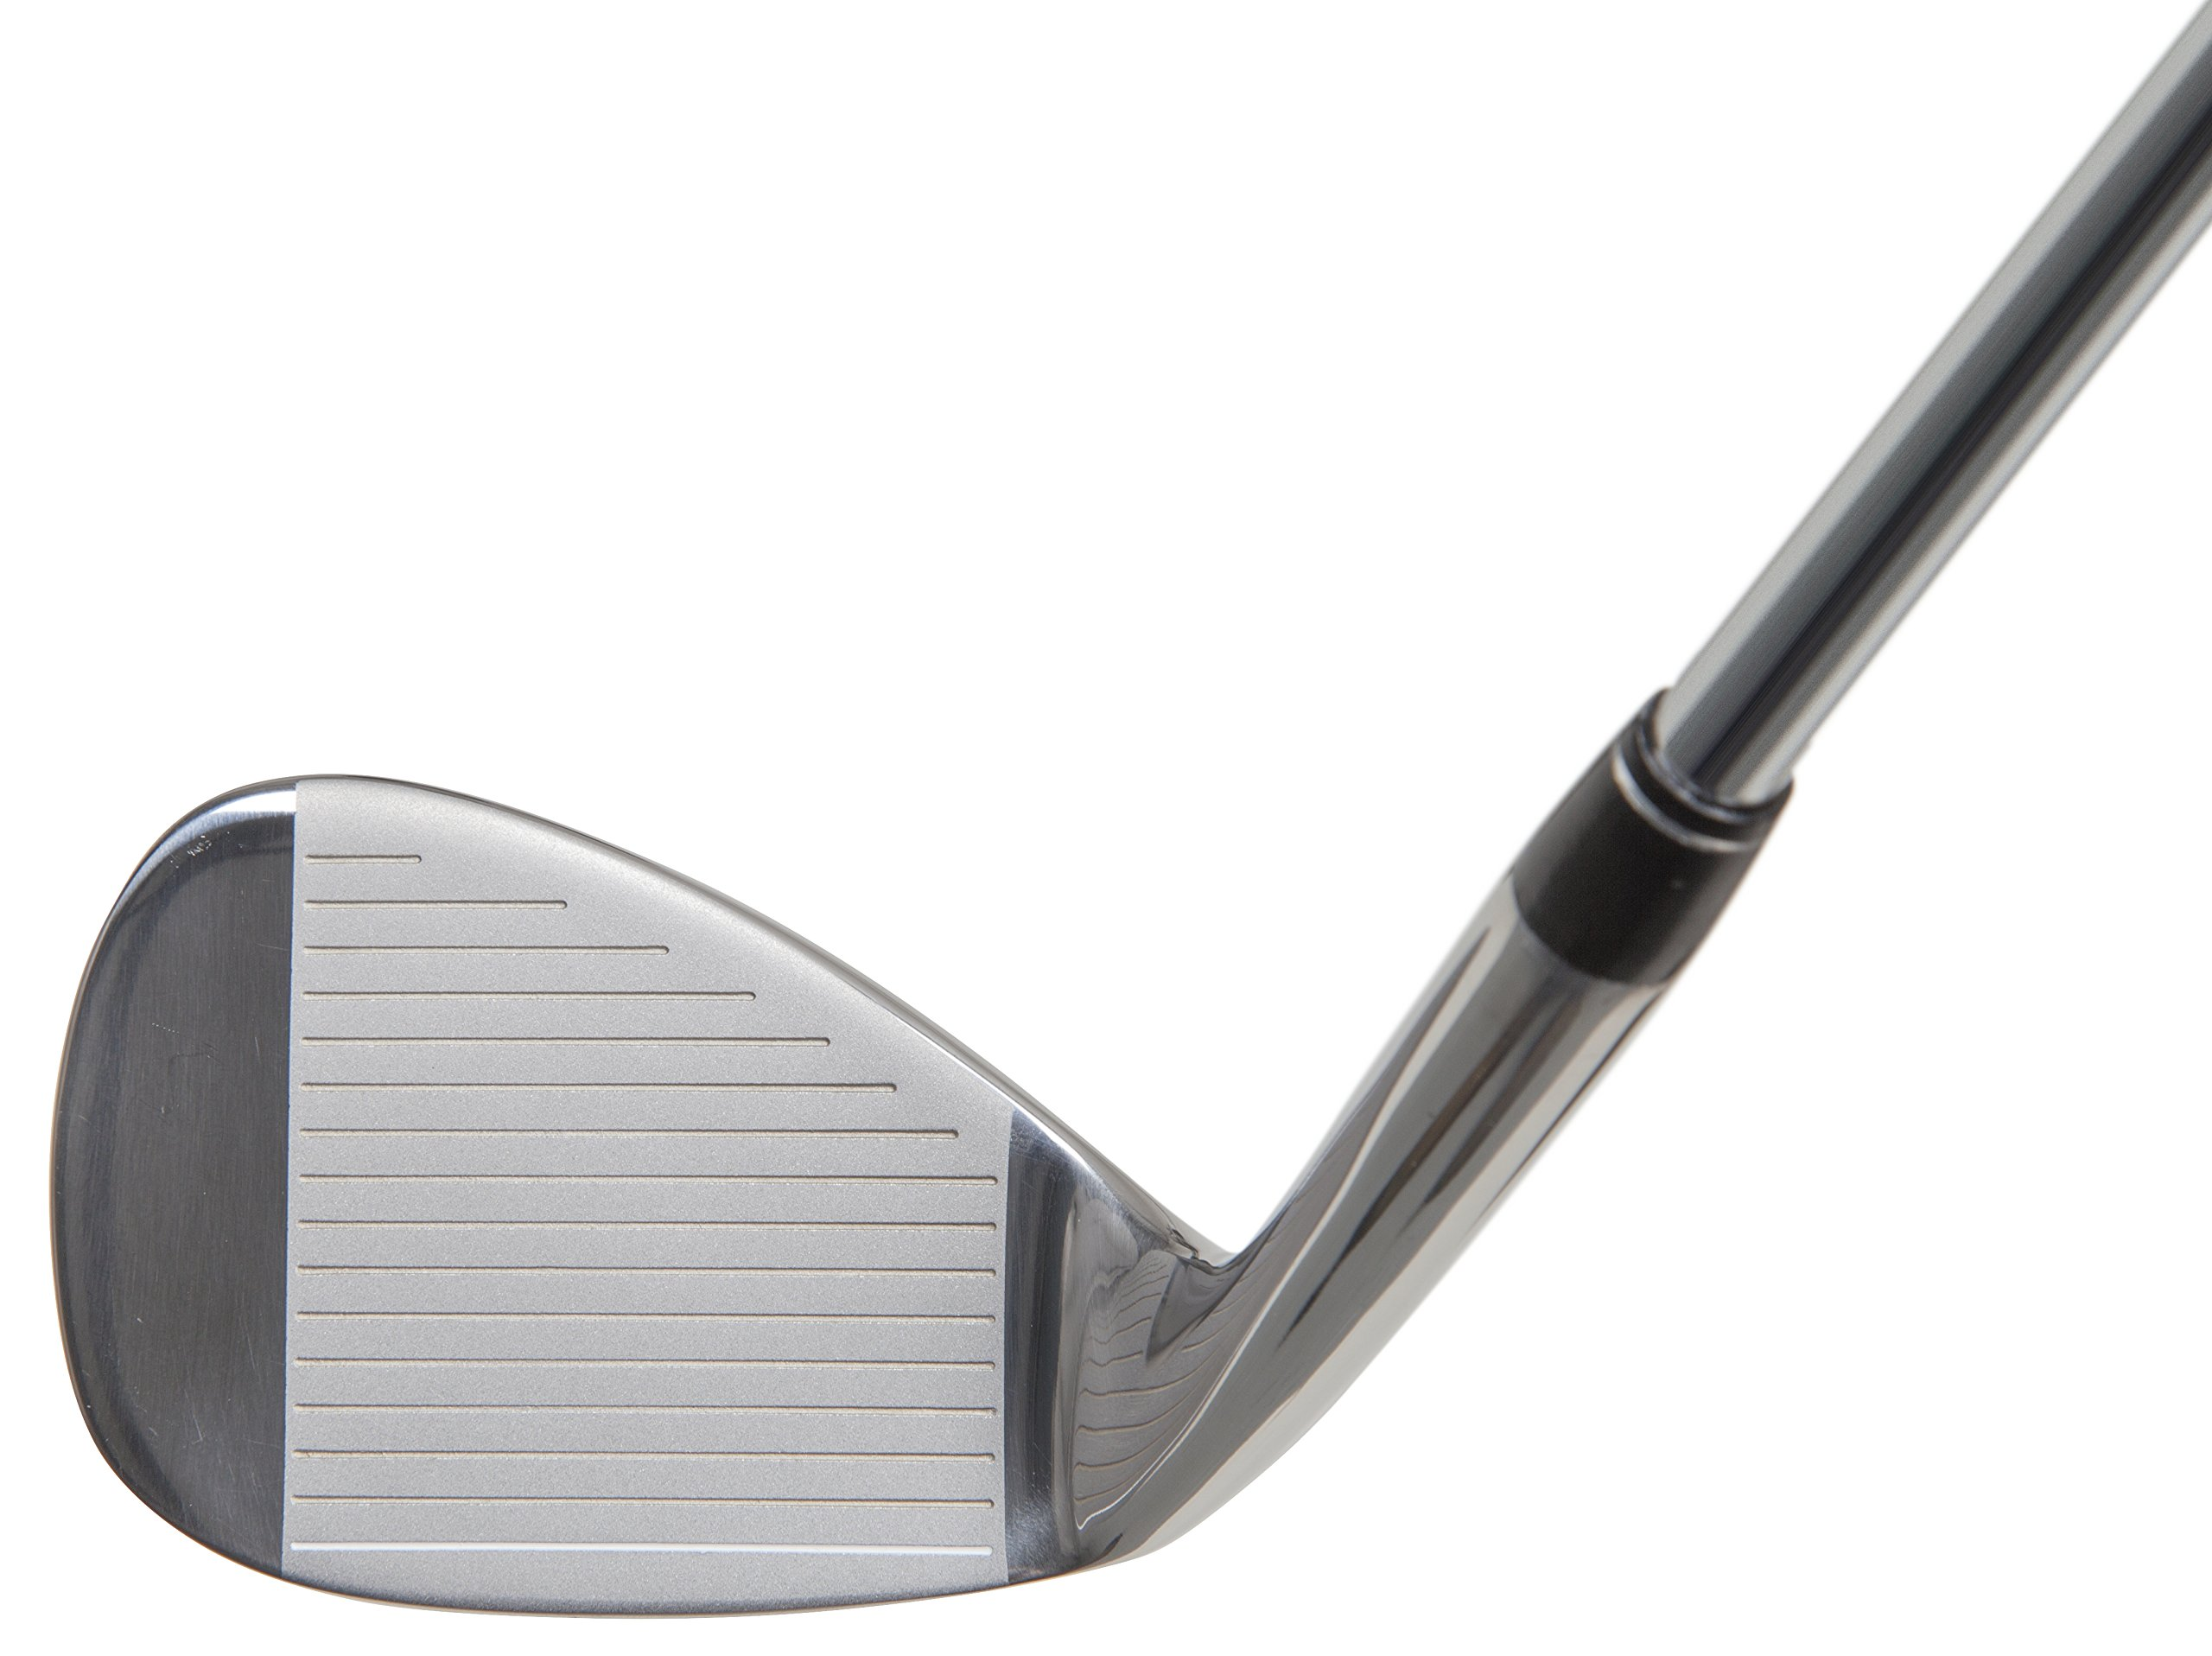 Pinemeadow Golf Men's Pre 4 Wedge Set, Right Hand, Steel, Regular, 52, 56, 60, 64 by Pinemeadow Golf (Image #1)